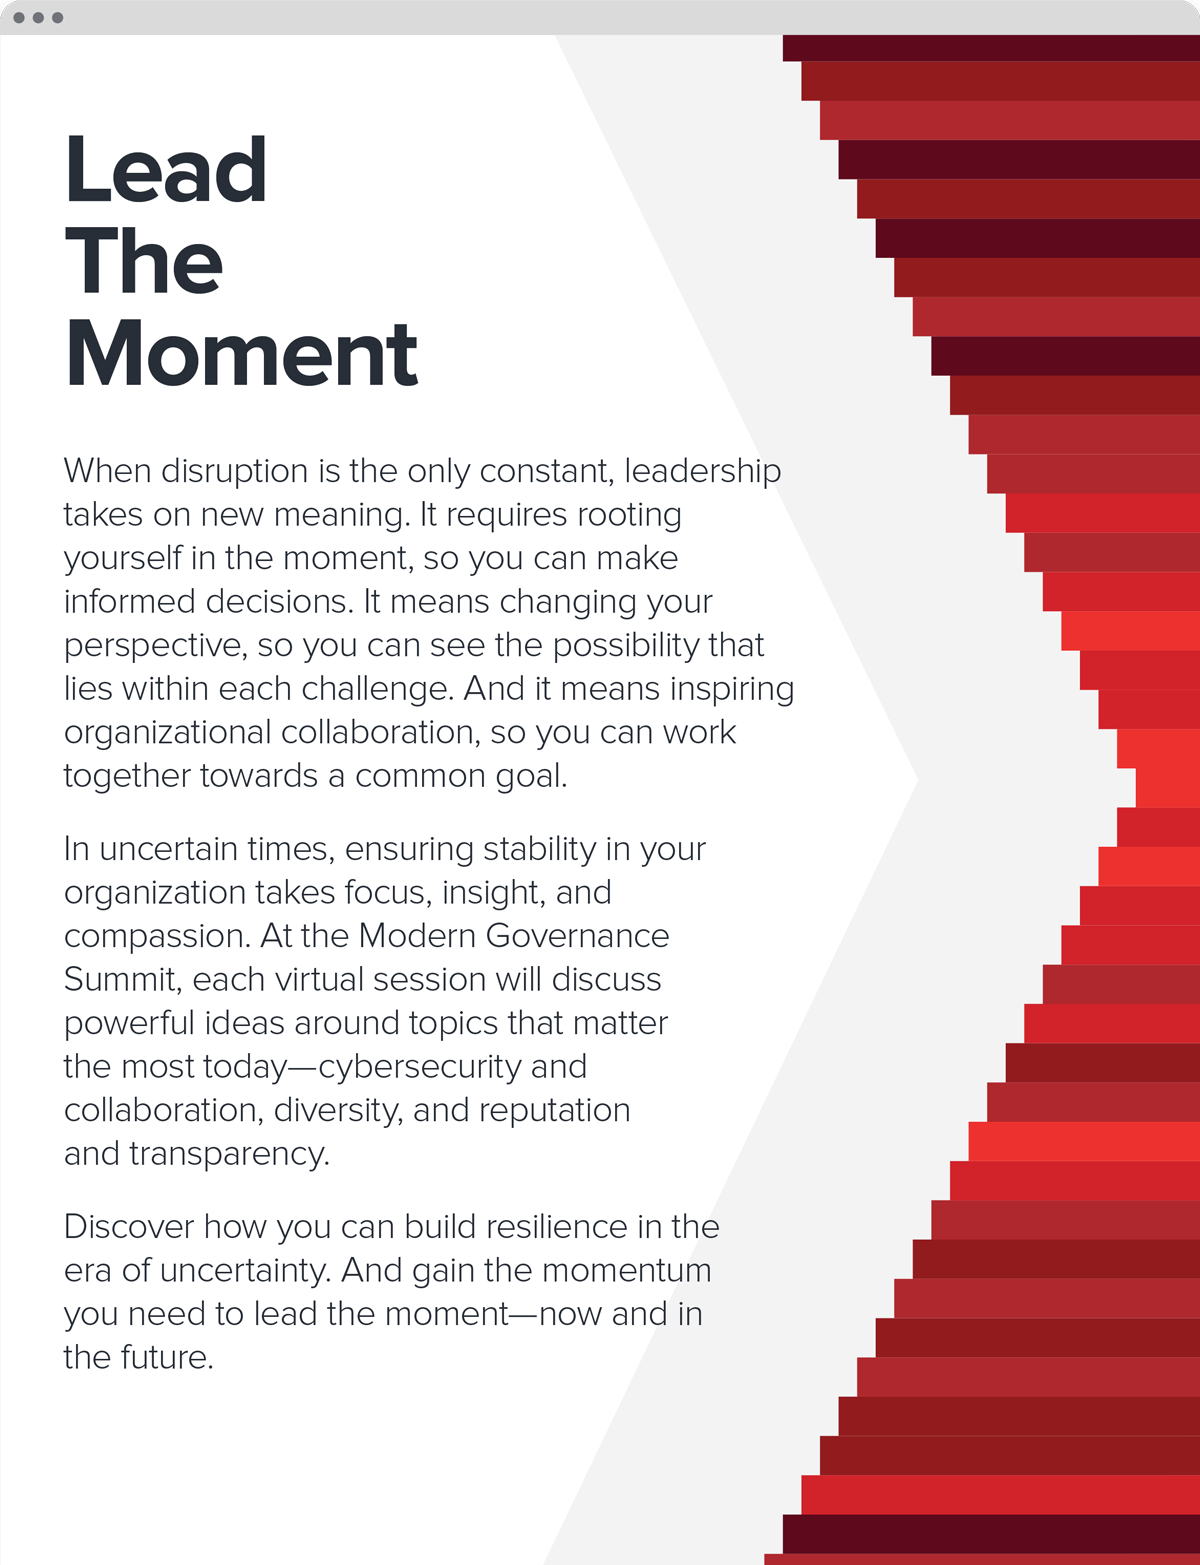 Lead the moment—theme and concept note created for the event.